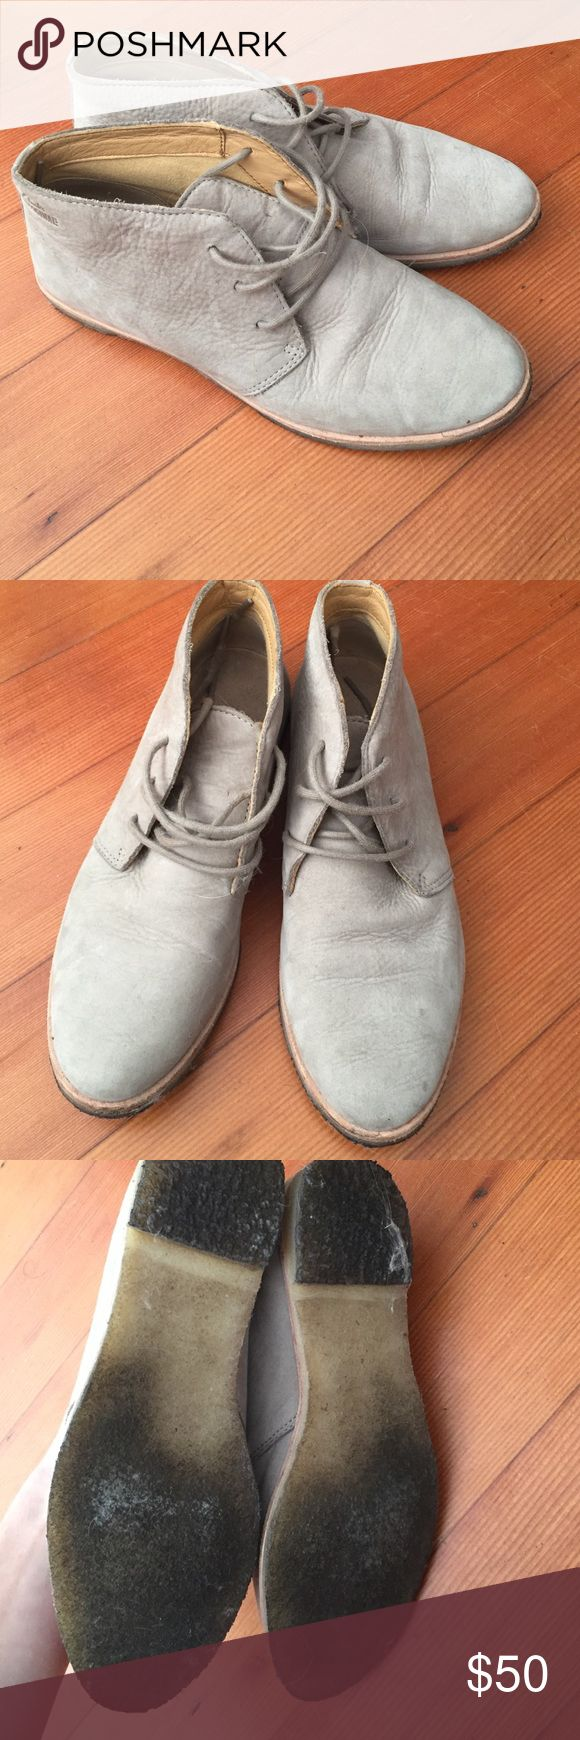 Clarks Chooka boots size 6 light grey suede Barely worn light grey suede Chooka boots size 6 Clarks Shoes Ankle Boots & Booties